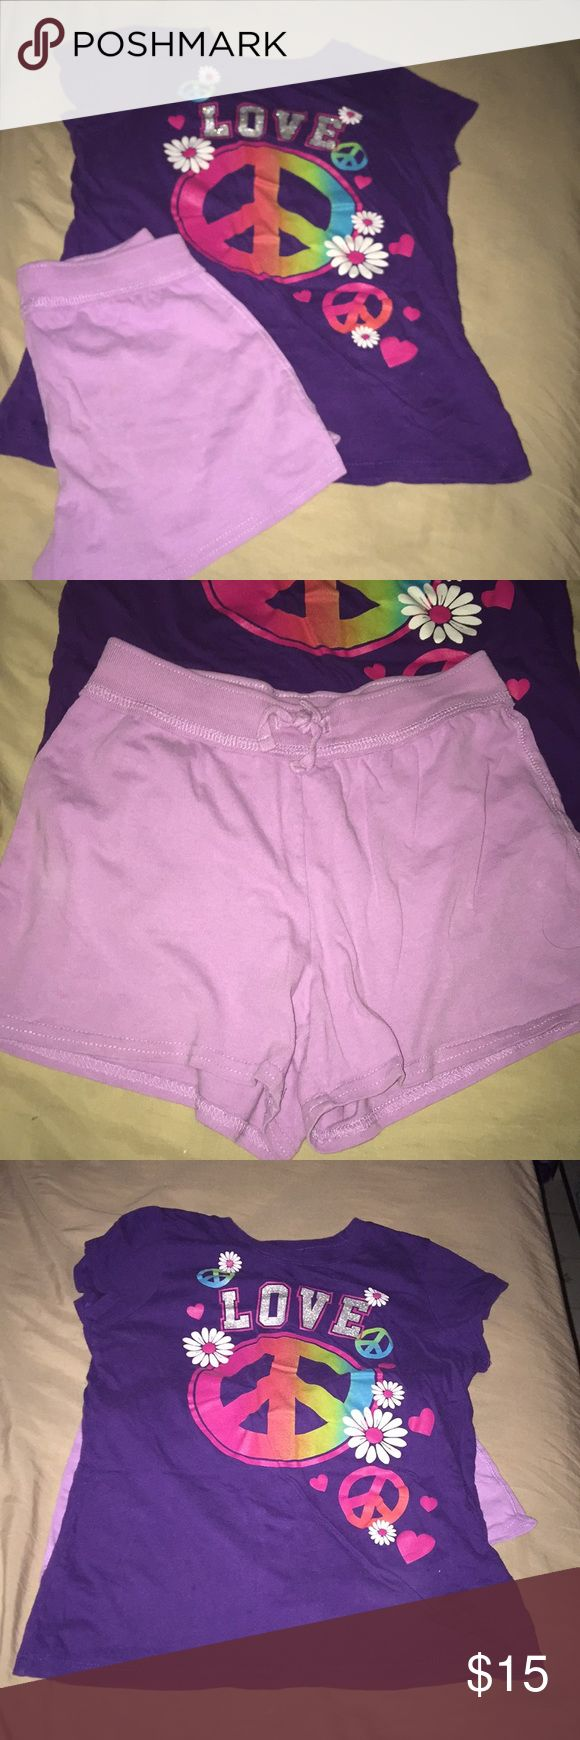 Little Girls Outfit Size Large 10-12 Super cute little girls summer outfit. Both the bottoms and the top are size large 10-12. There in good used condition. No holes, stains, tears, or rips. From a pet free smoke free home. Children's Place Matching Sets